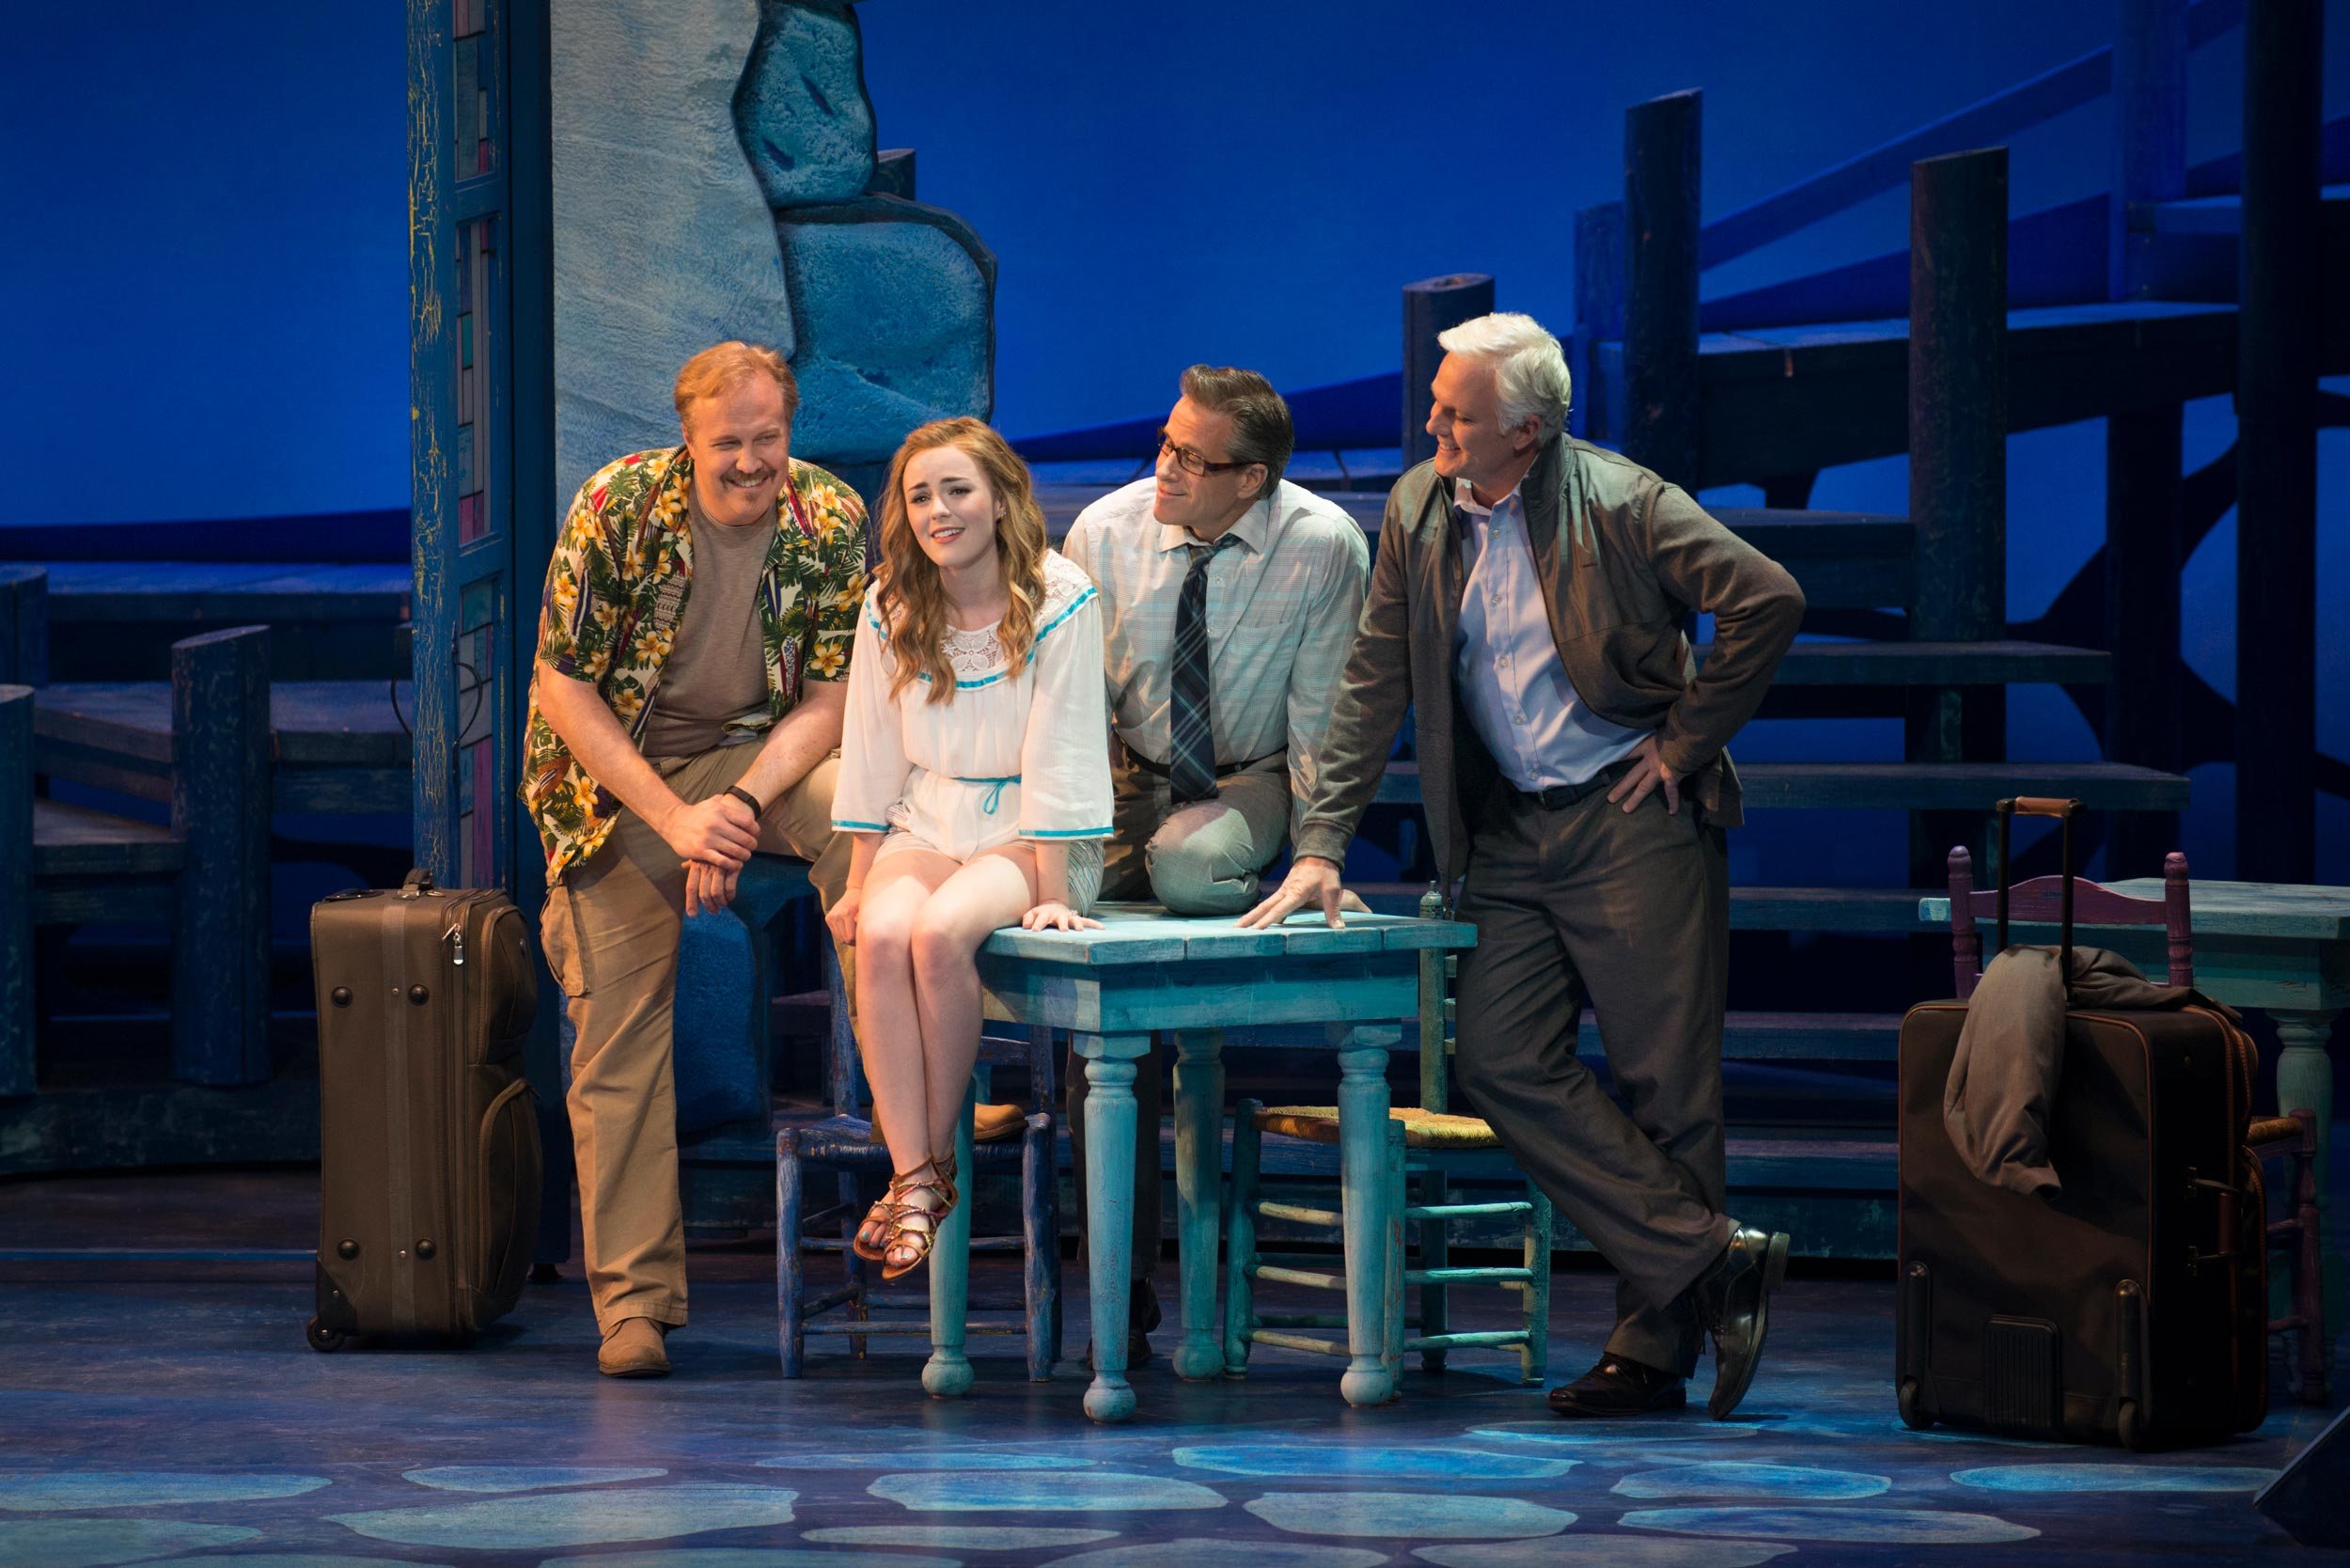 Fred Inkley, Briana Rapa, David Engel, Patrick Cassidy in Mamma Mia! at the Ogunquit Playhouse - Photo by Gary Ng